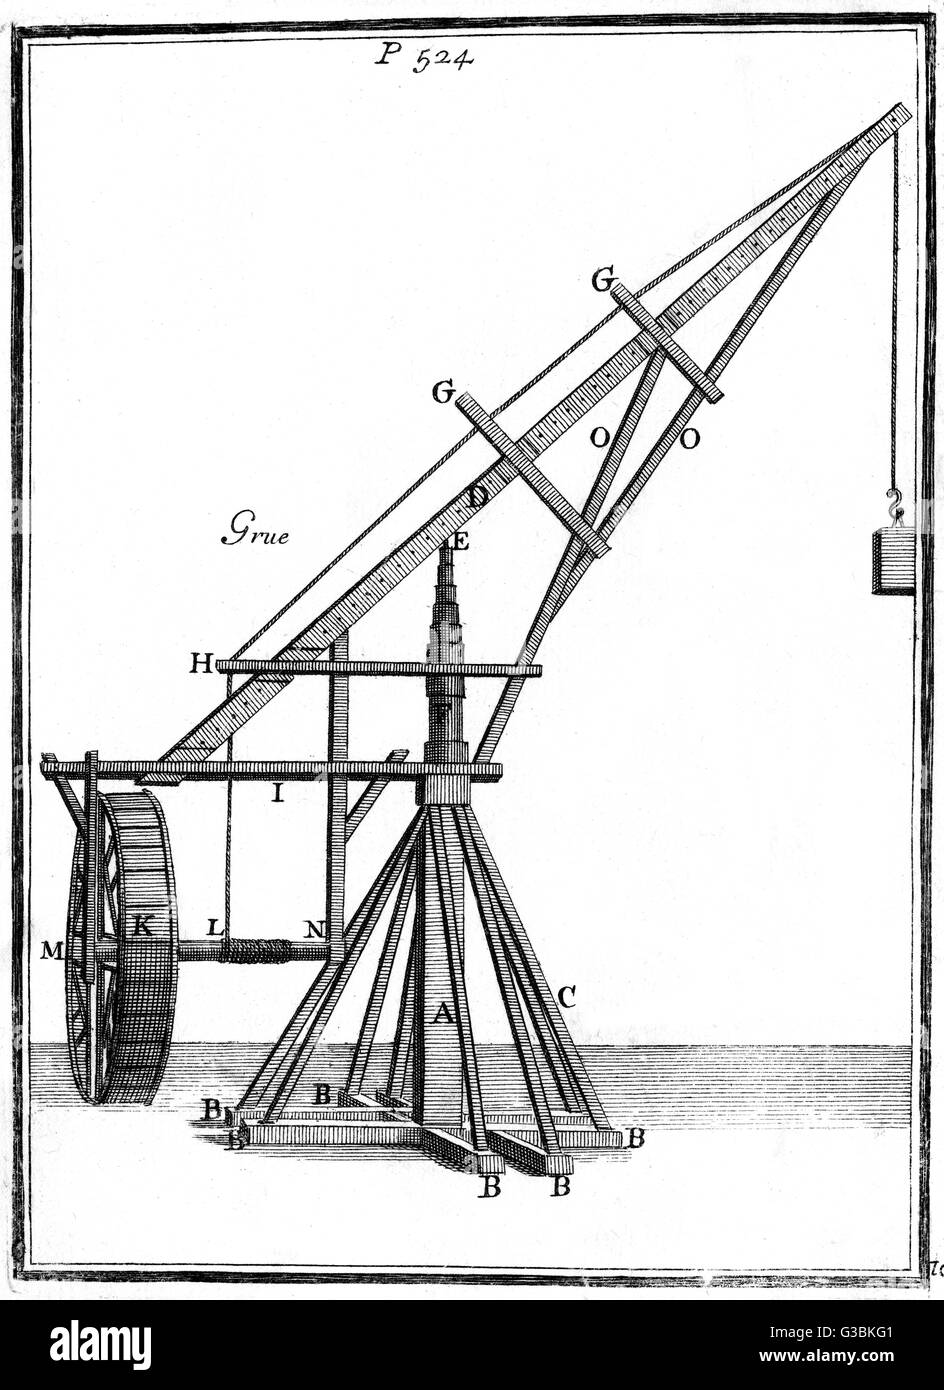 hight resolution of a 17th century crane timber construction the wheel enables it to be turned for instance when loading a vessel from a dock date 1690